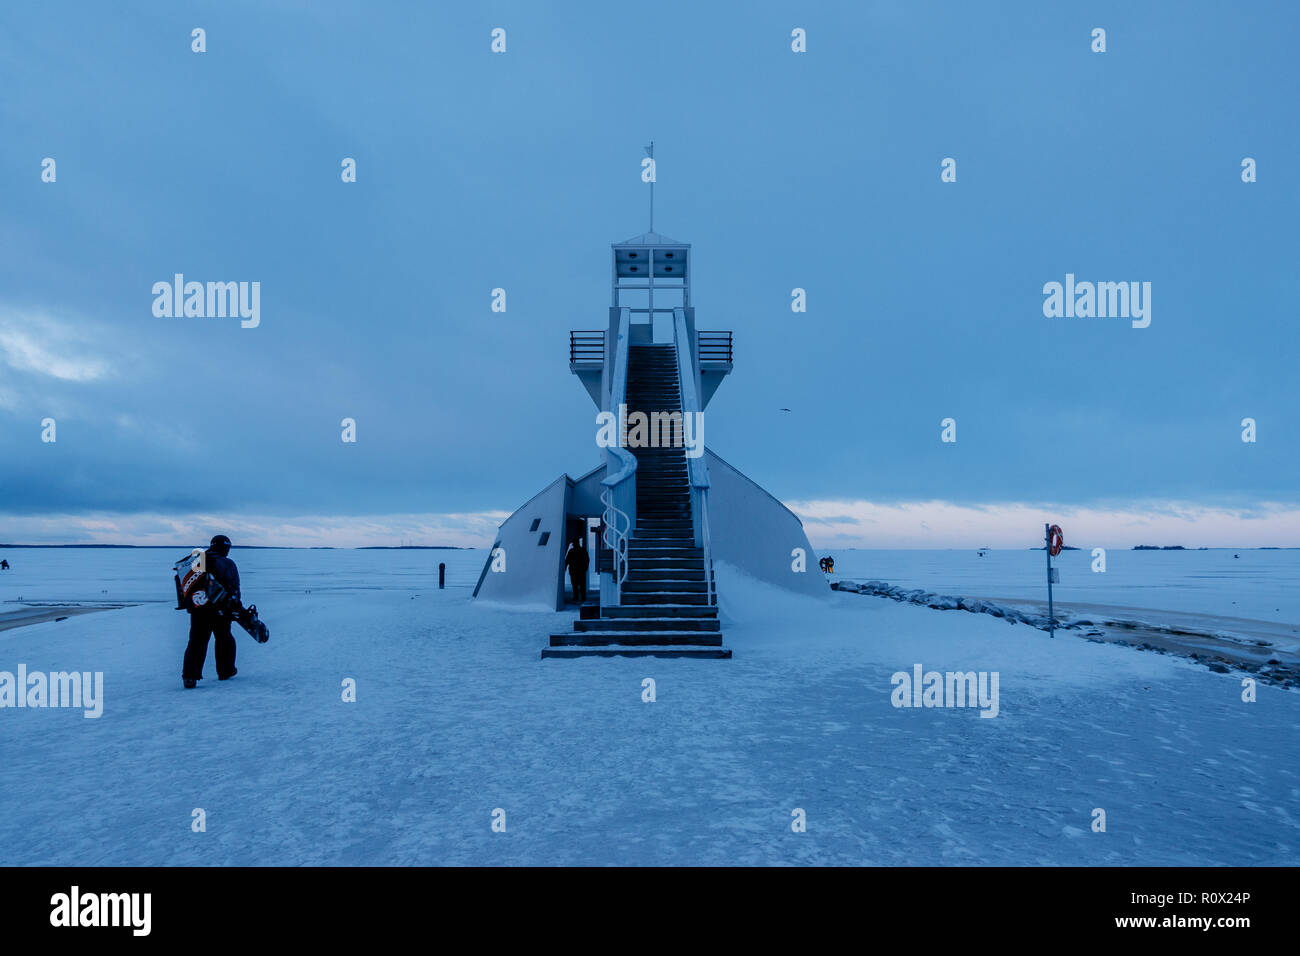 Oulu lighthouse at winter. Finland - Stock Image